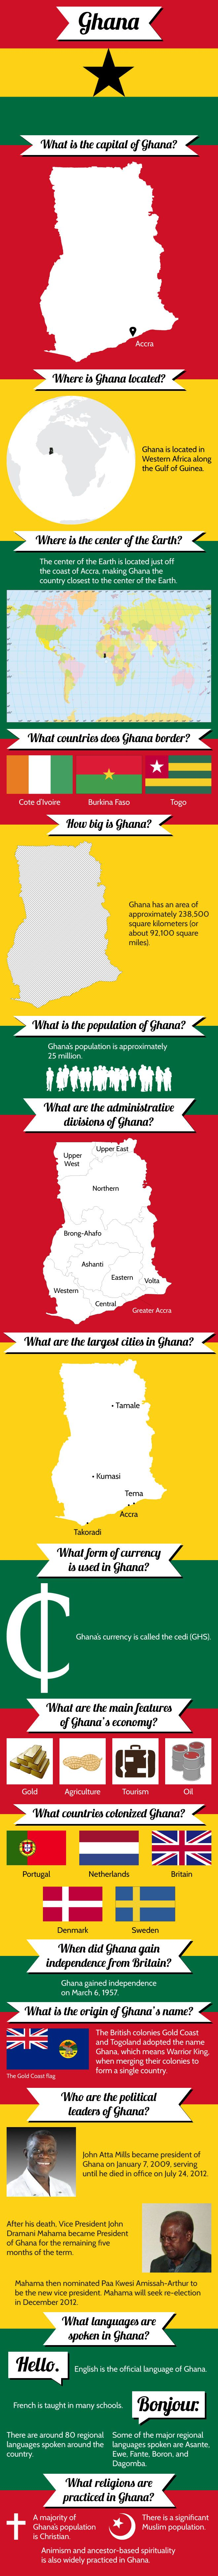 Infographic of Ghana Facts